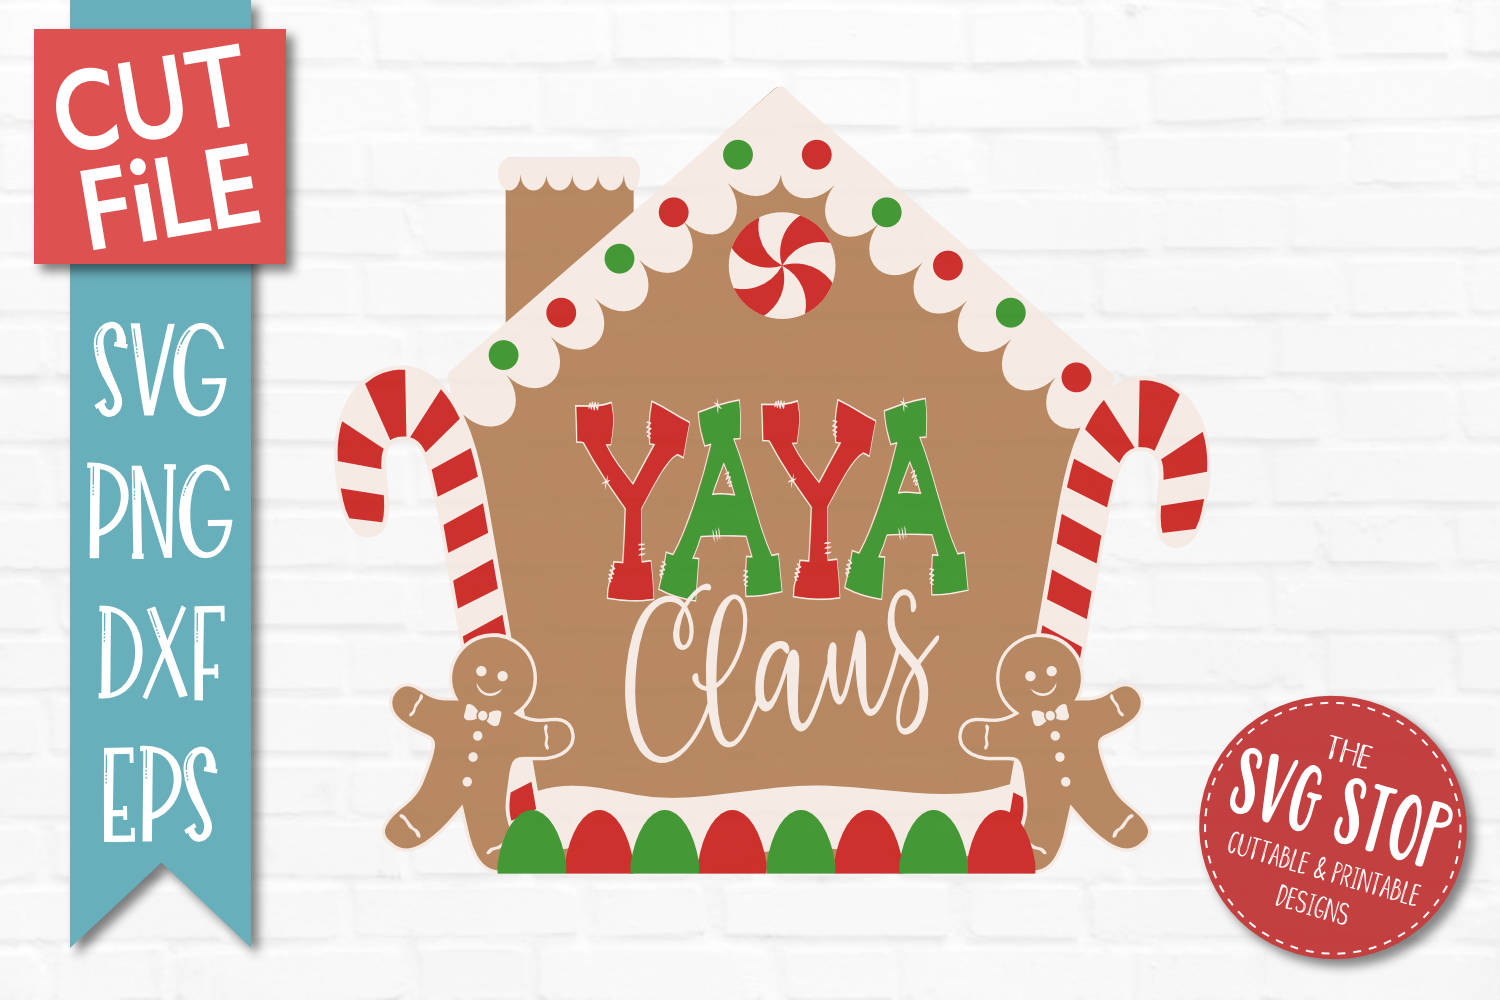 Yaya Claus Gingerbread Christmas SVG, PNG, DXF, EPS example image 1